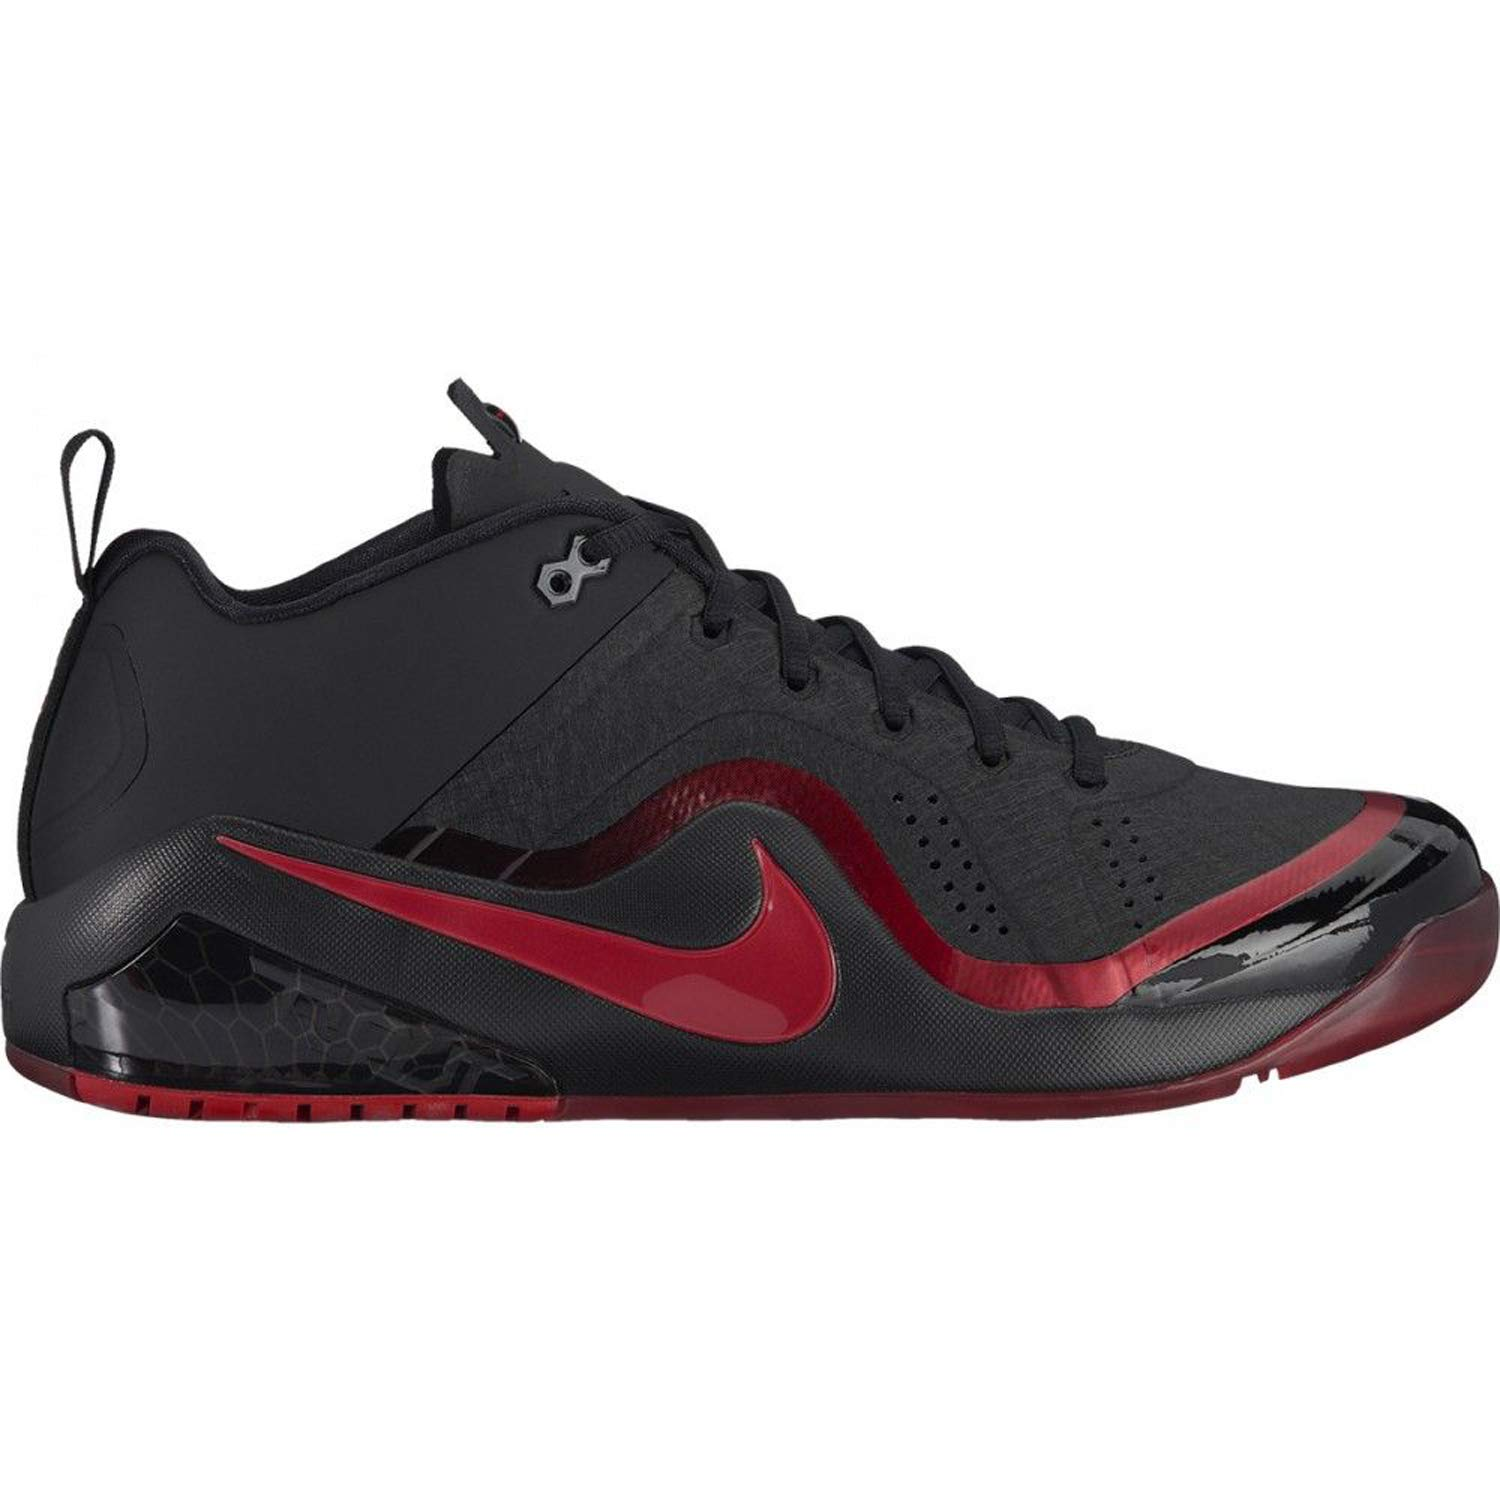 new style 2281c d5d5c Amazon.com   Nike Men s Force Zoom Trout 4 Turf Baseball Trainers   Fashion  Sneakers